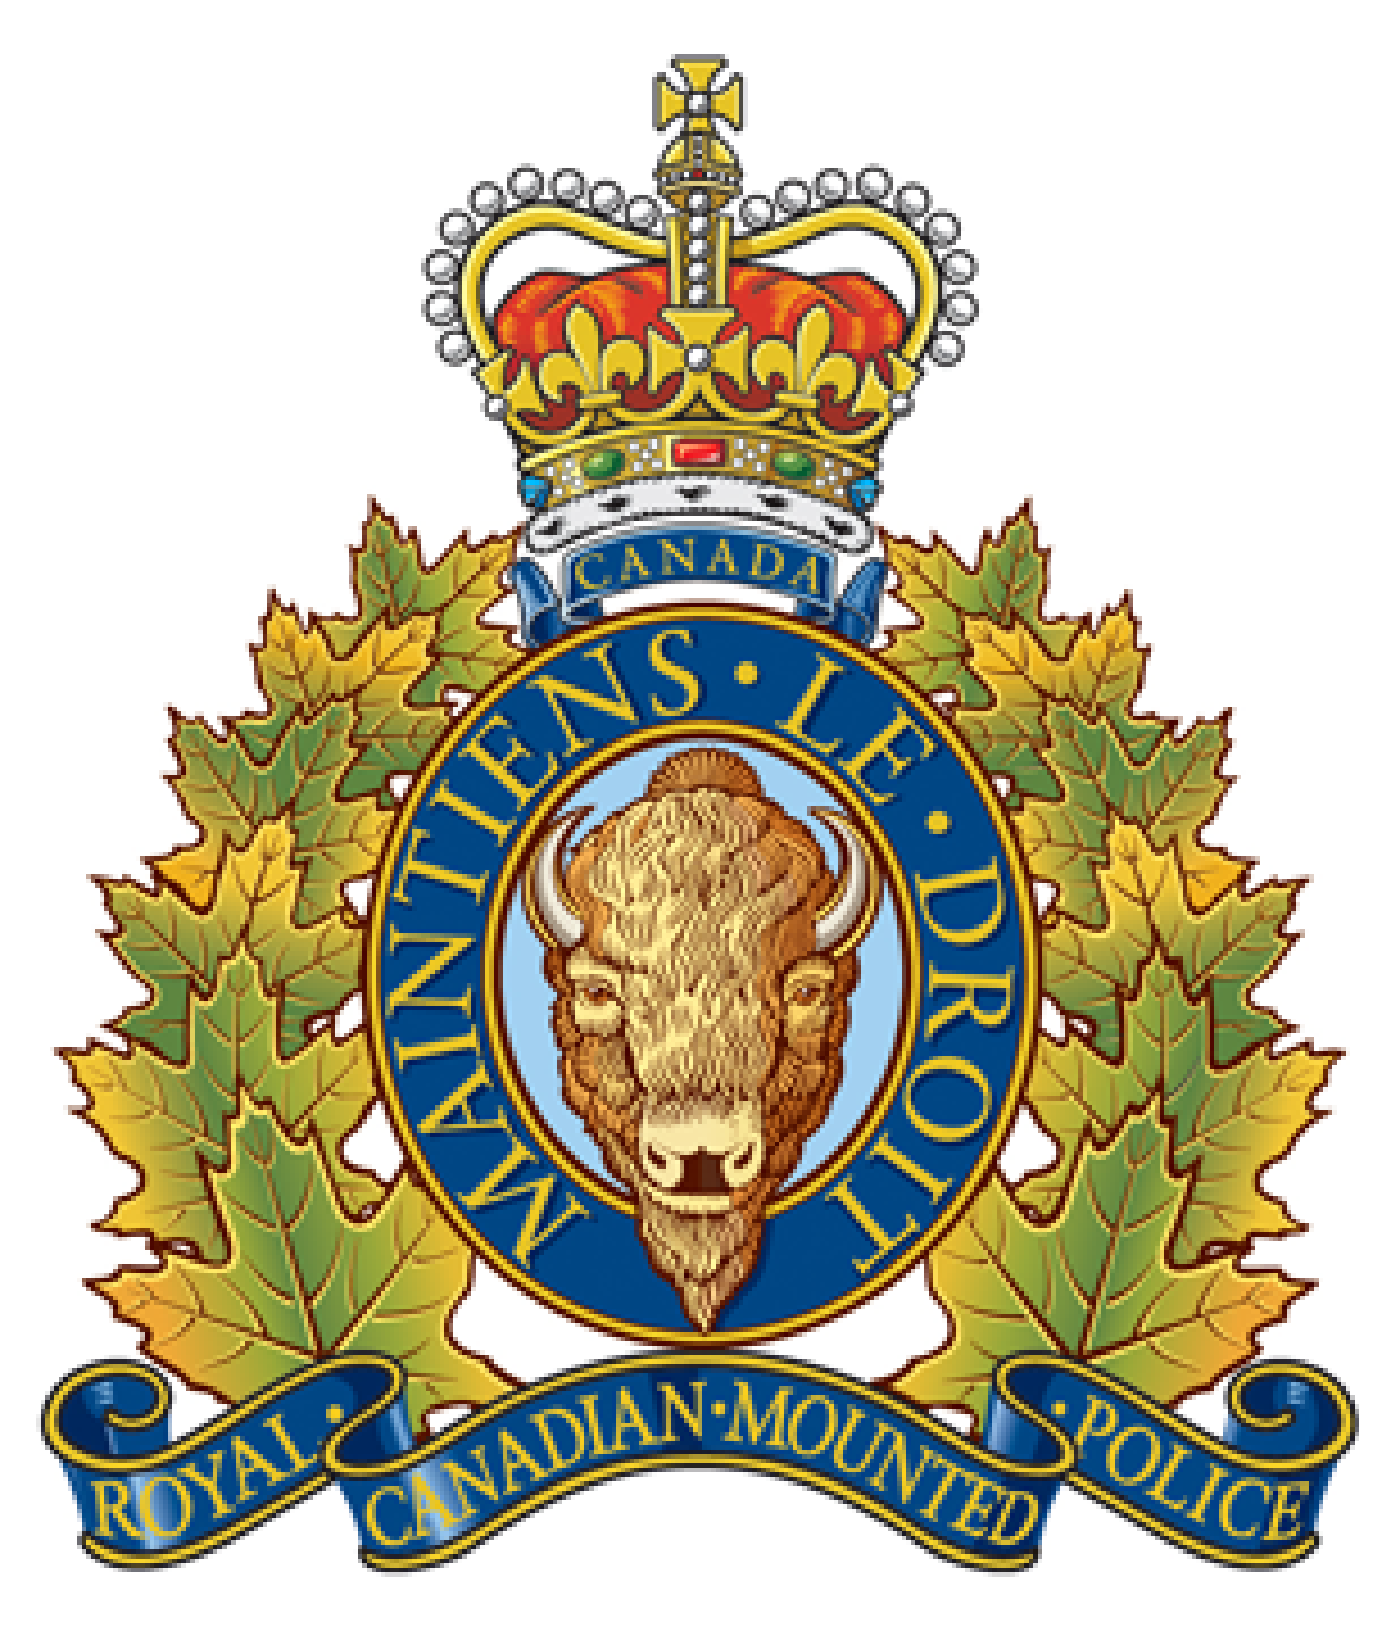 Image of RCMP crest